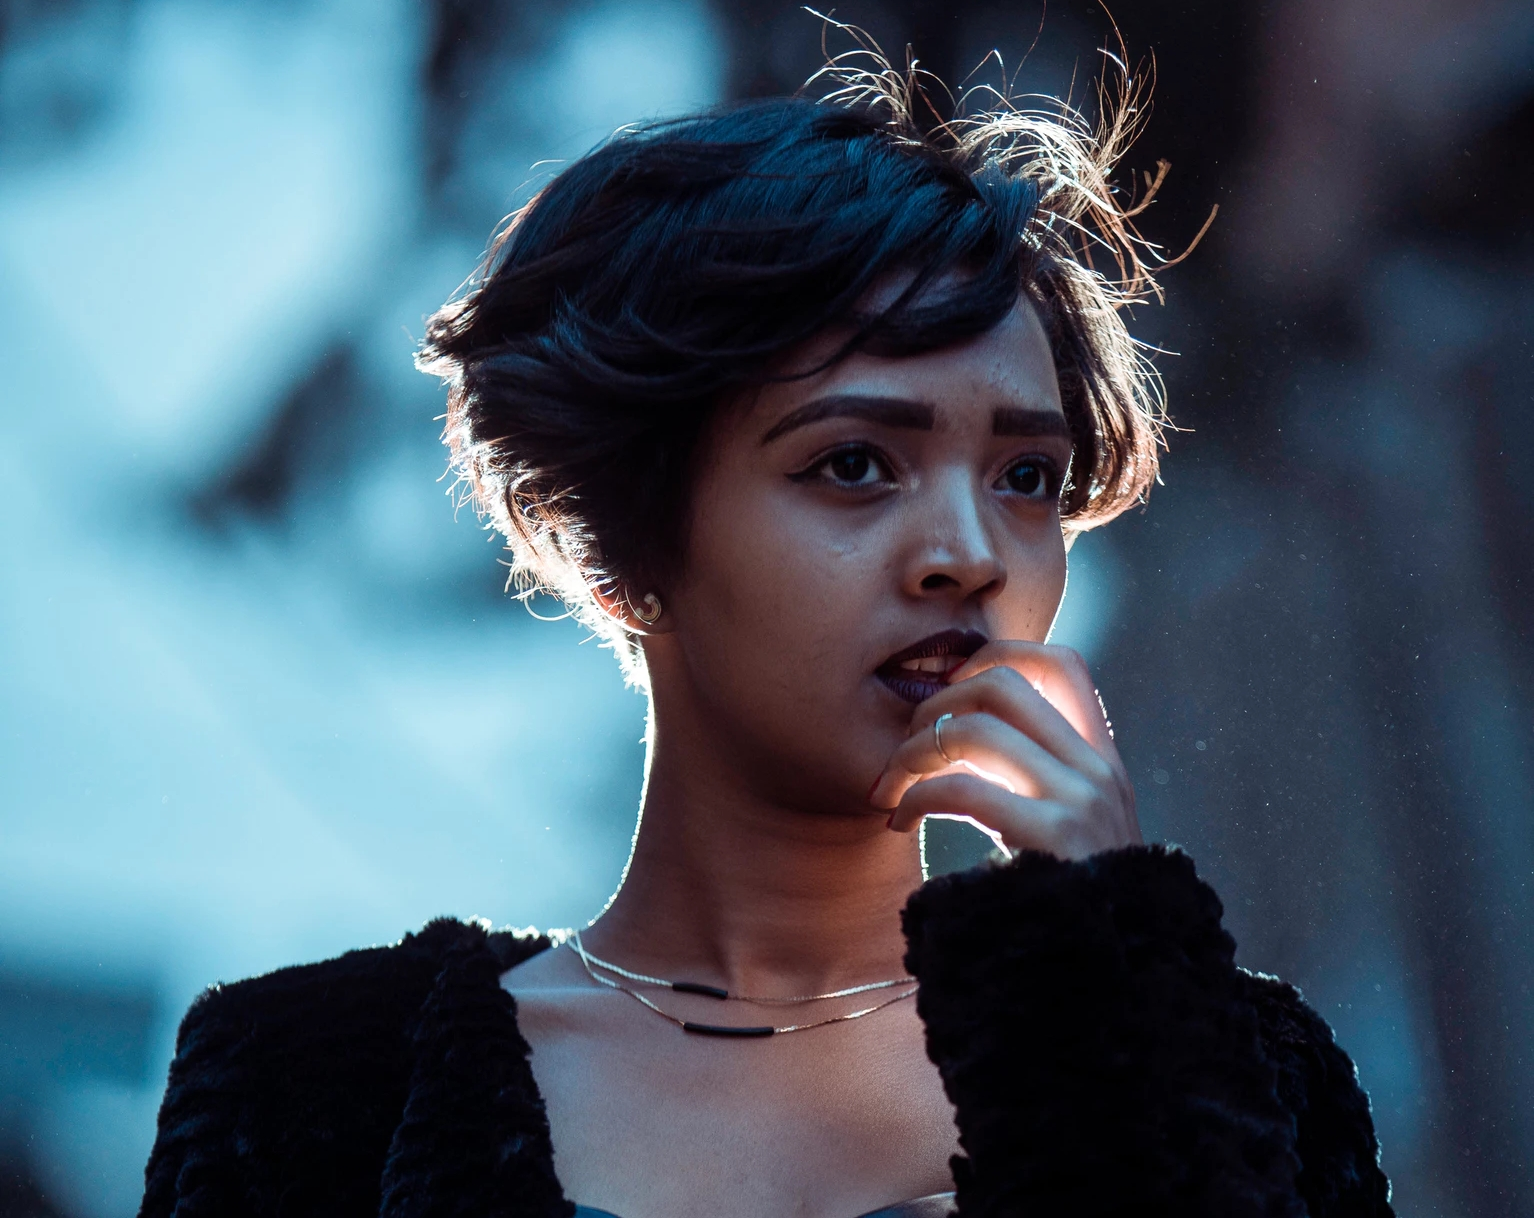 girl with pixie haircut at prom